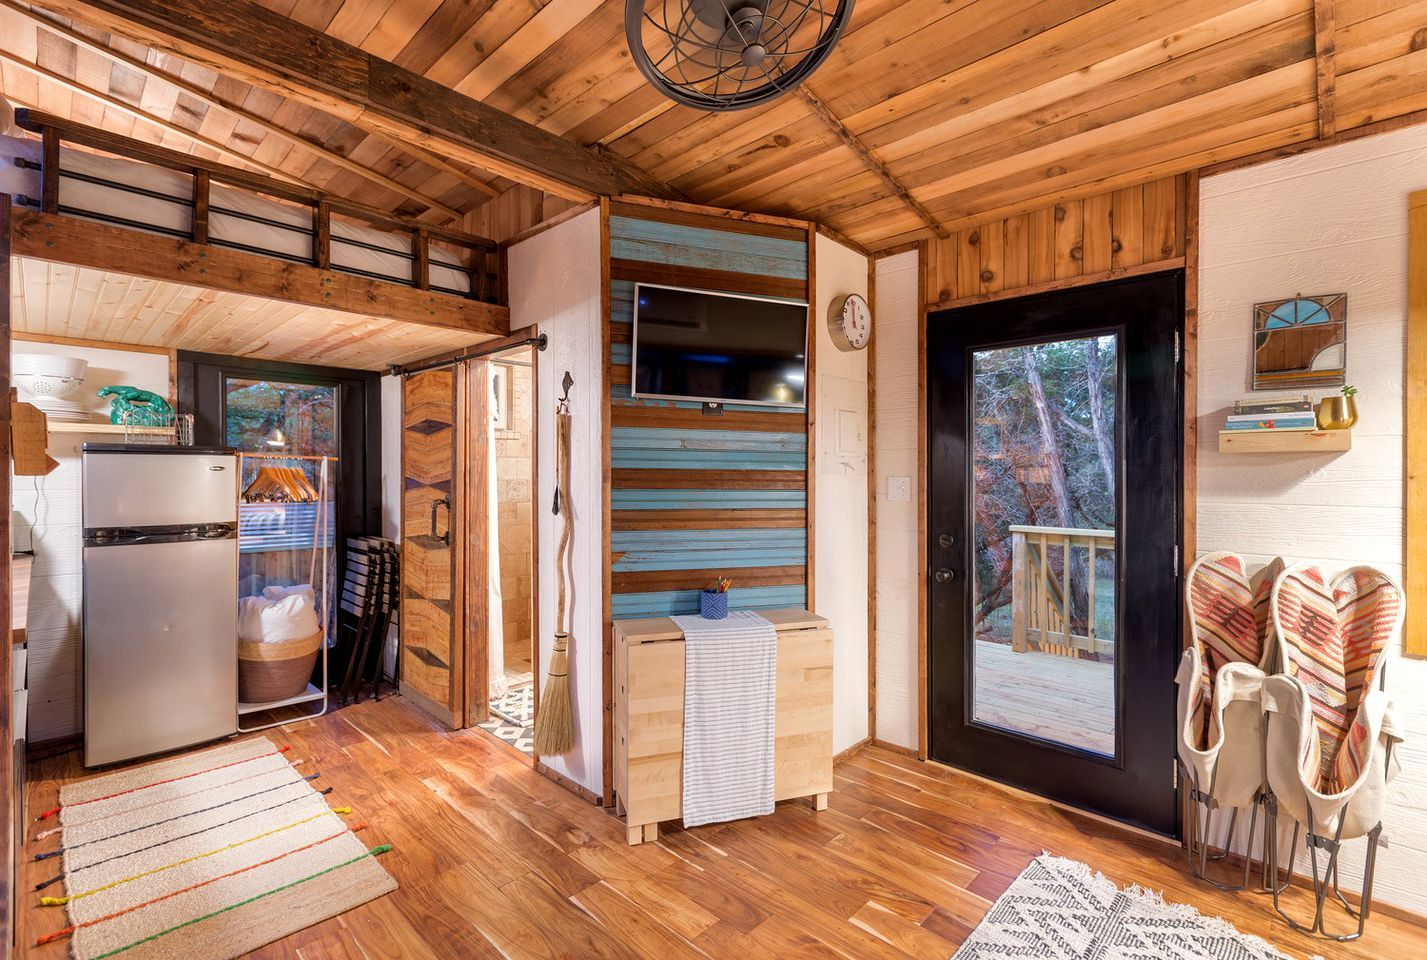 Stunning Wimberley Accommodation Ideal For Romantic Getaways Near Austin Tiny Houses For Rent Tiny House Tiny Living